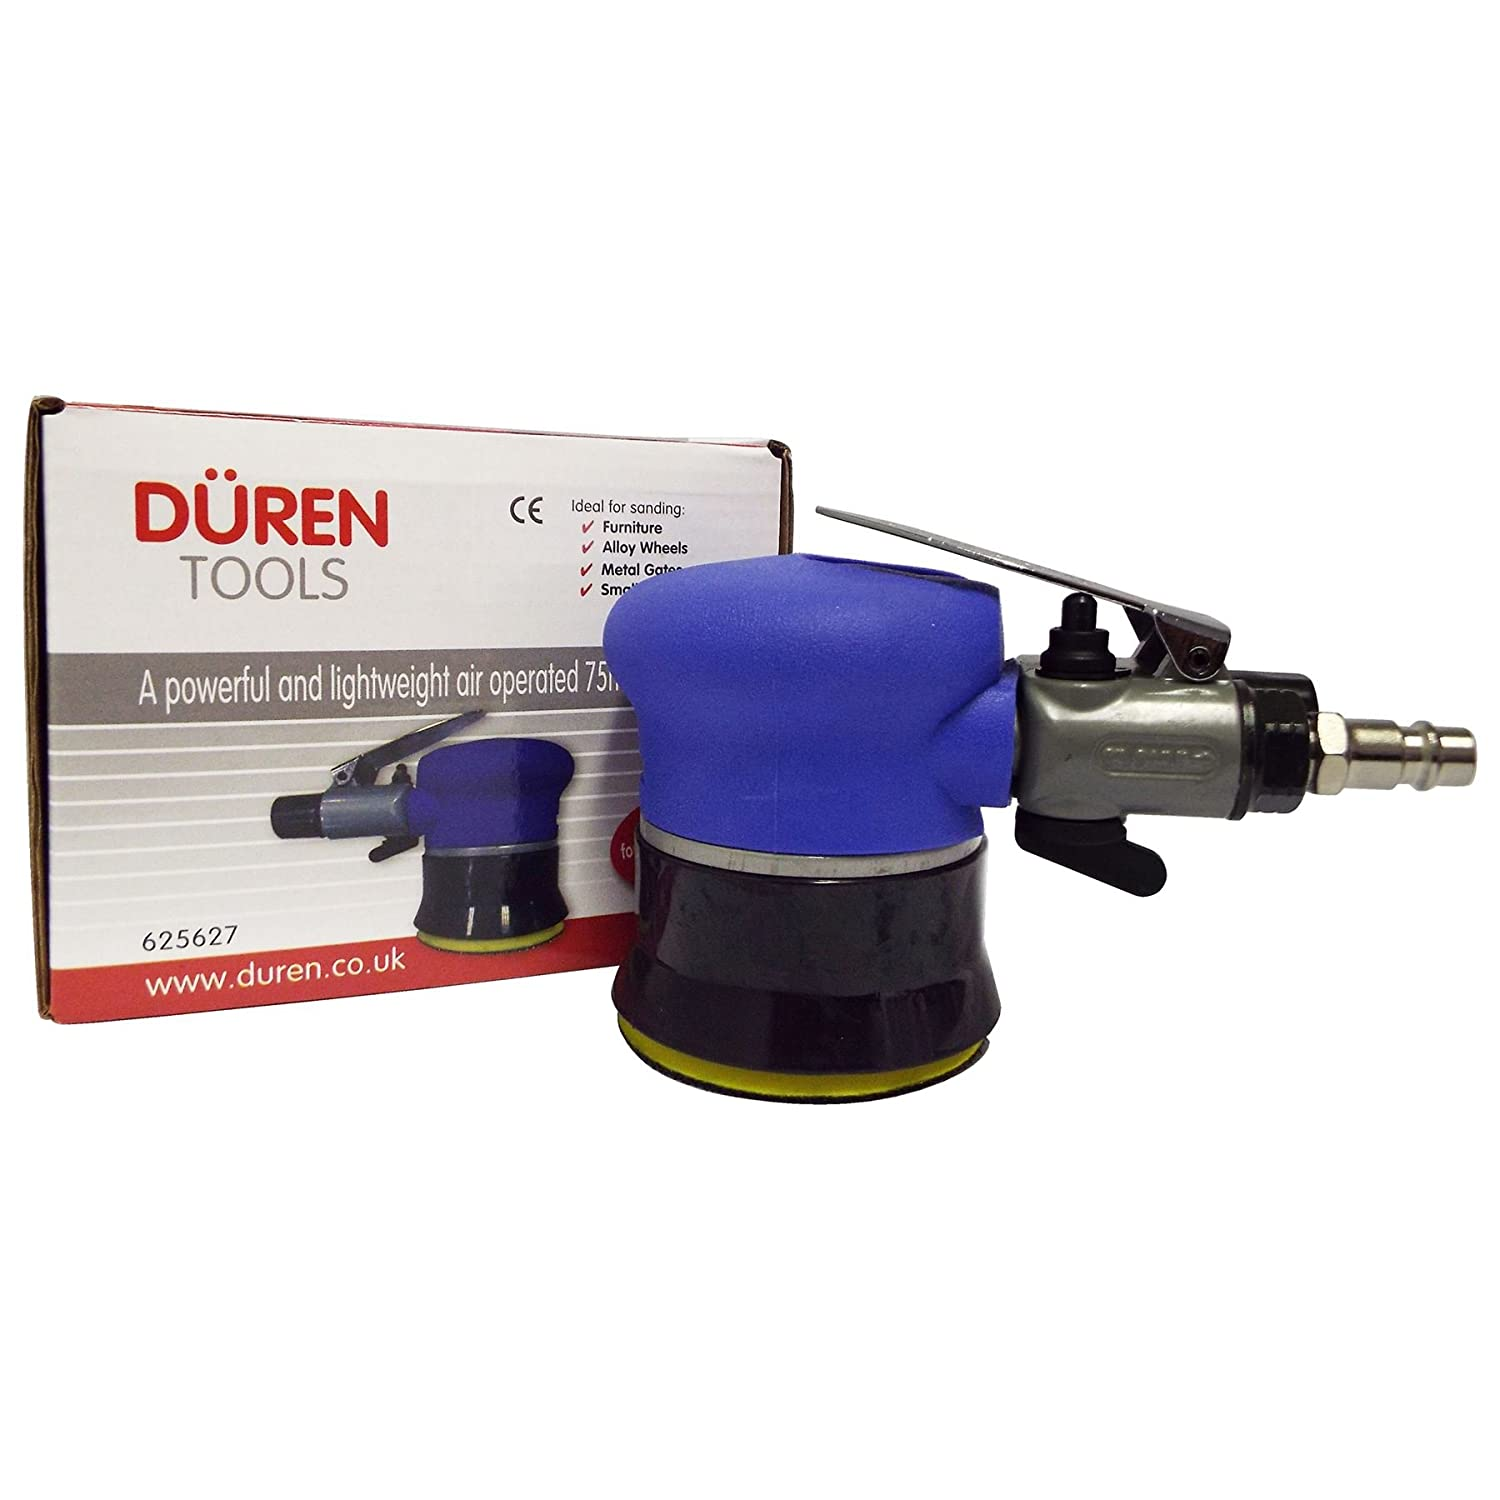 Duren 625627 75mm Mini Palm Air Sander (3') - Car Body and Alloy Wheel Repairs Spot Repair Scratch Remover Mini Polisher Duren Tools